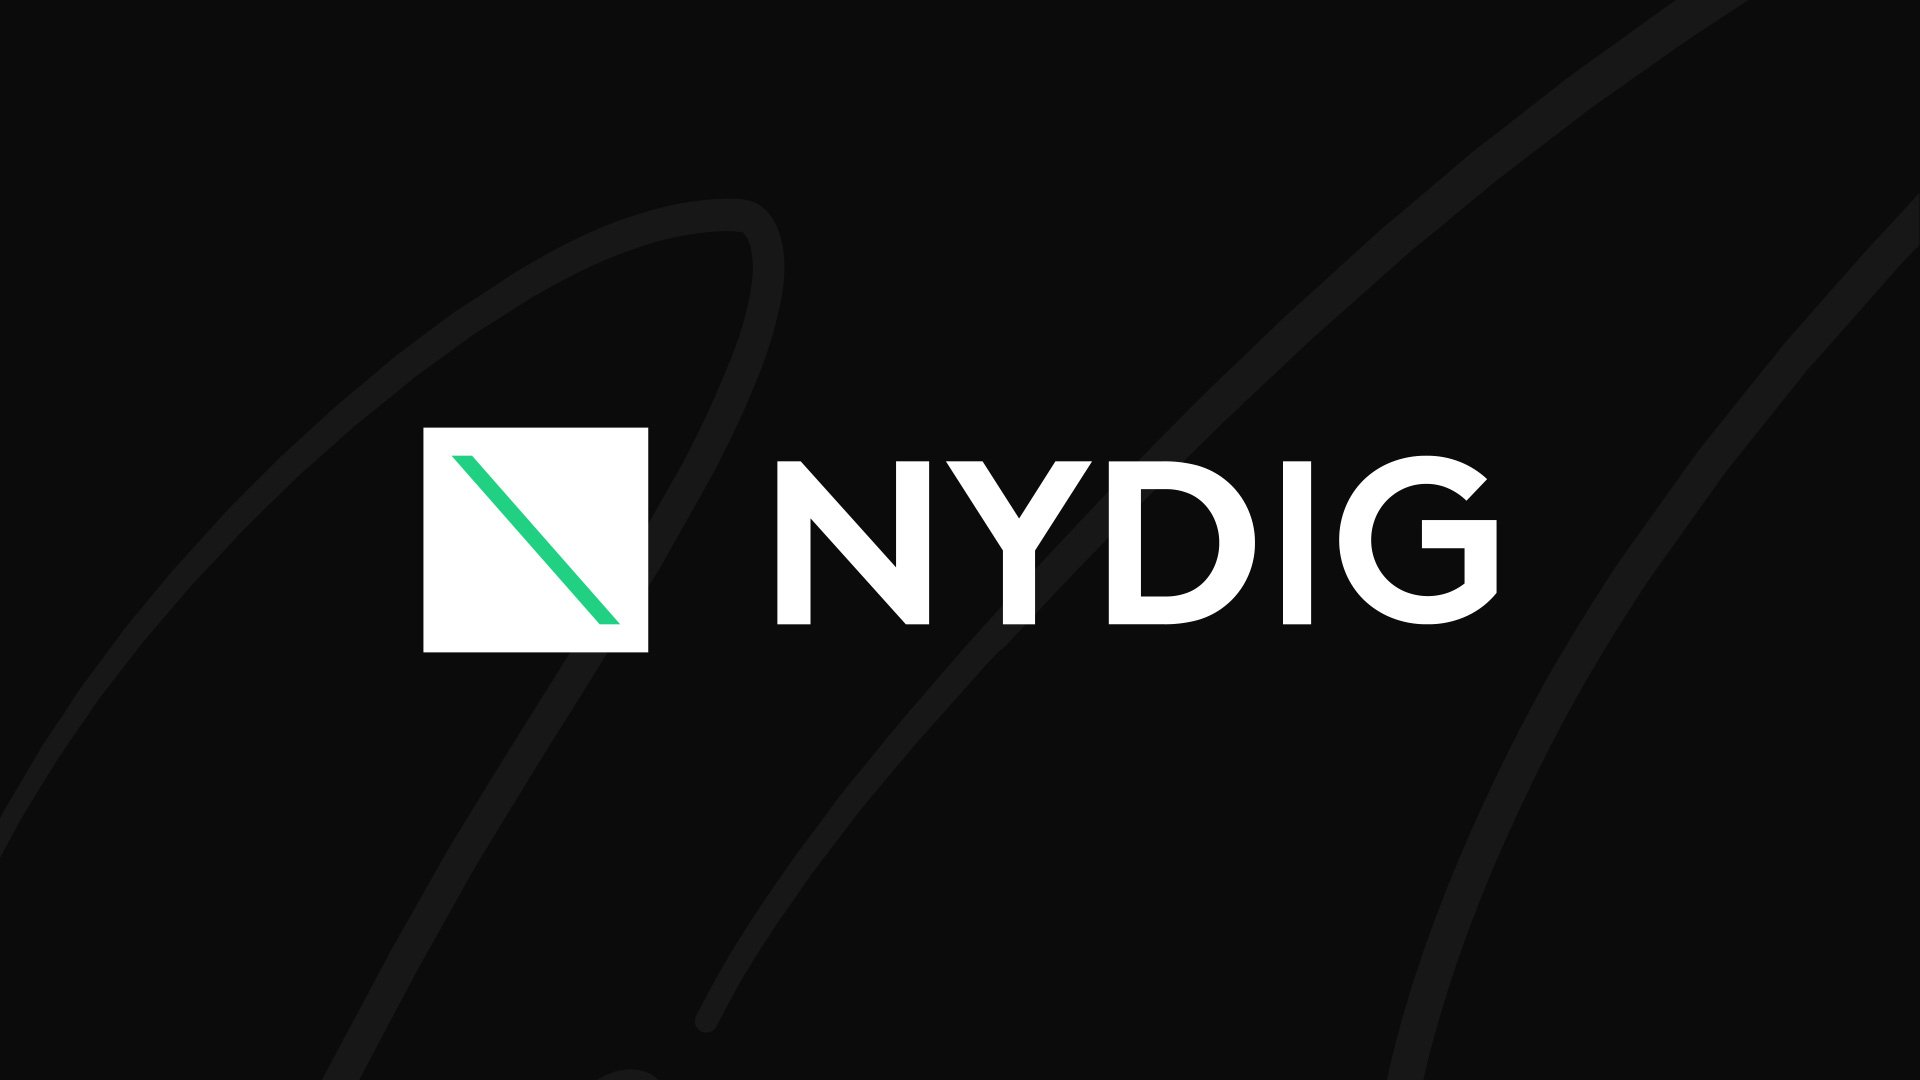 Bitcoin fund launched by NYDIG has raised nearly $17 million to date